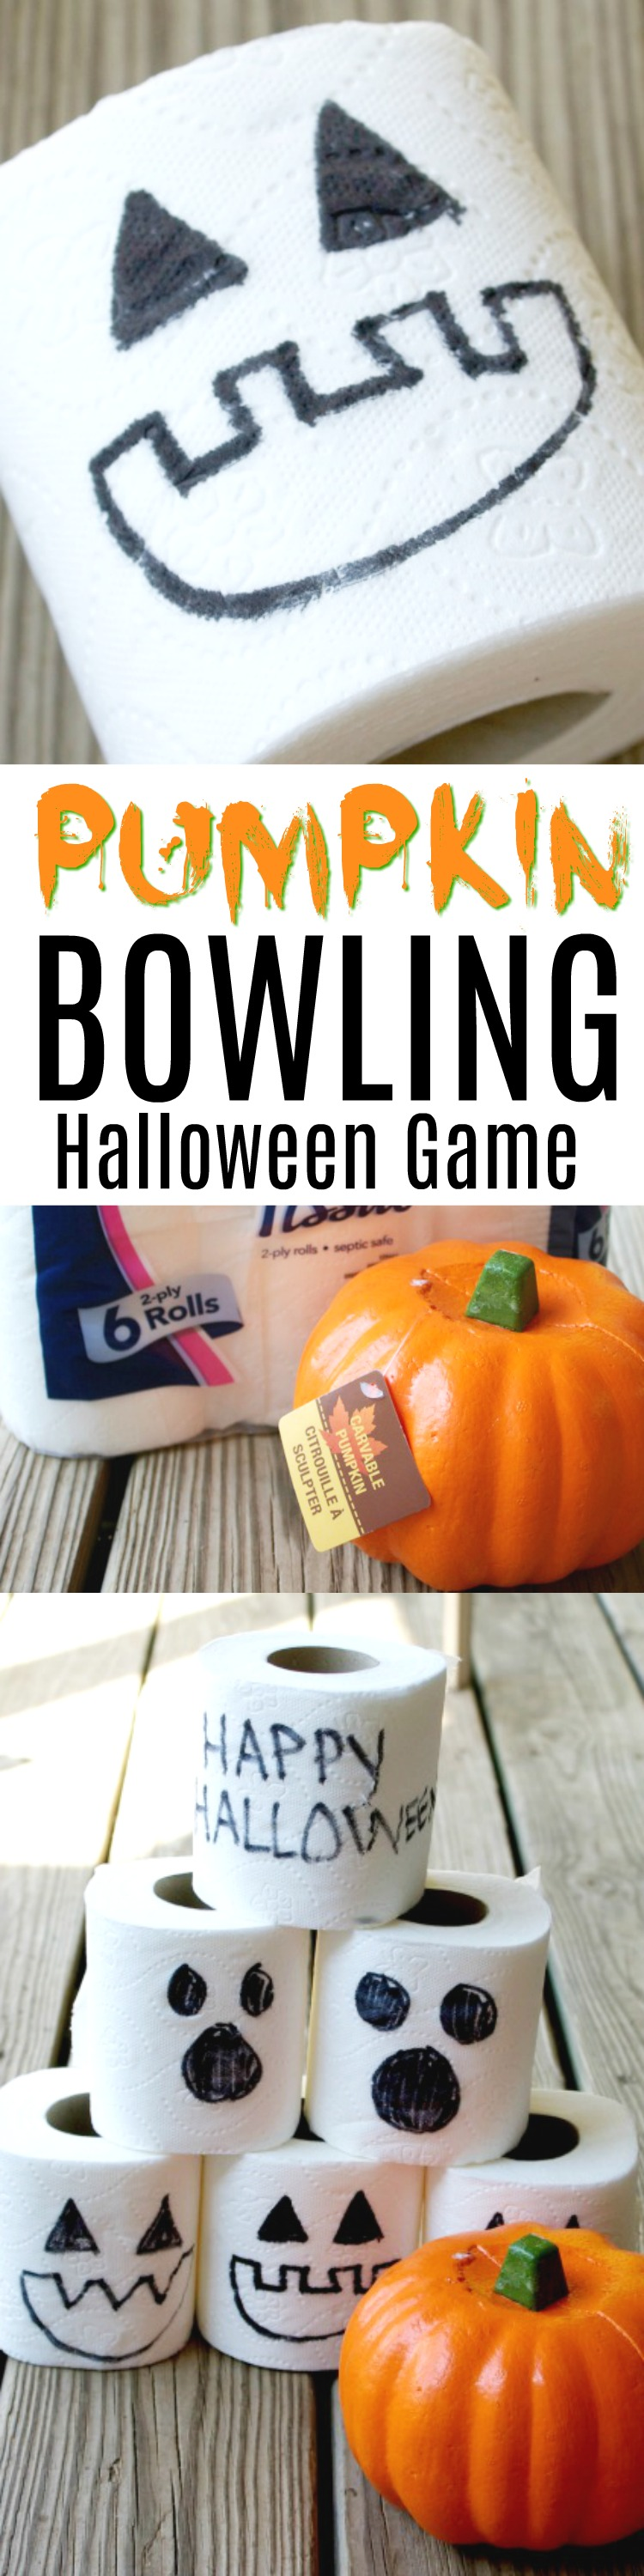 Pumpkin Bowling Easy Halloween Game For Kids